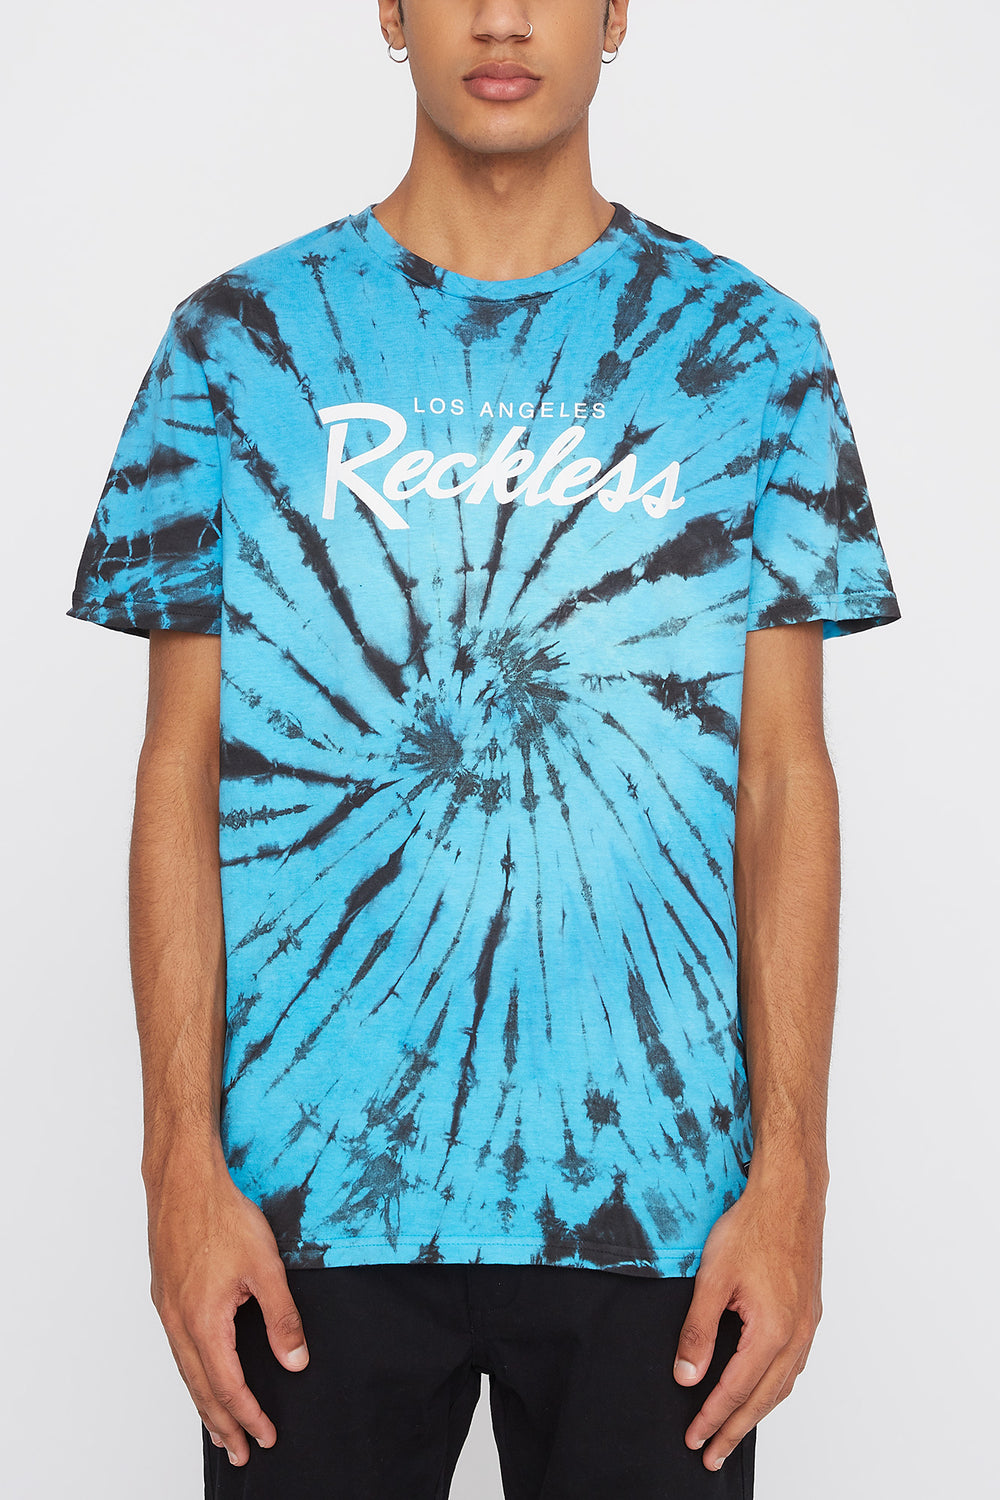 T-Shirt Tie-Dye Young & Reckless Homme Turquoise